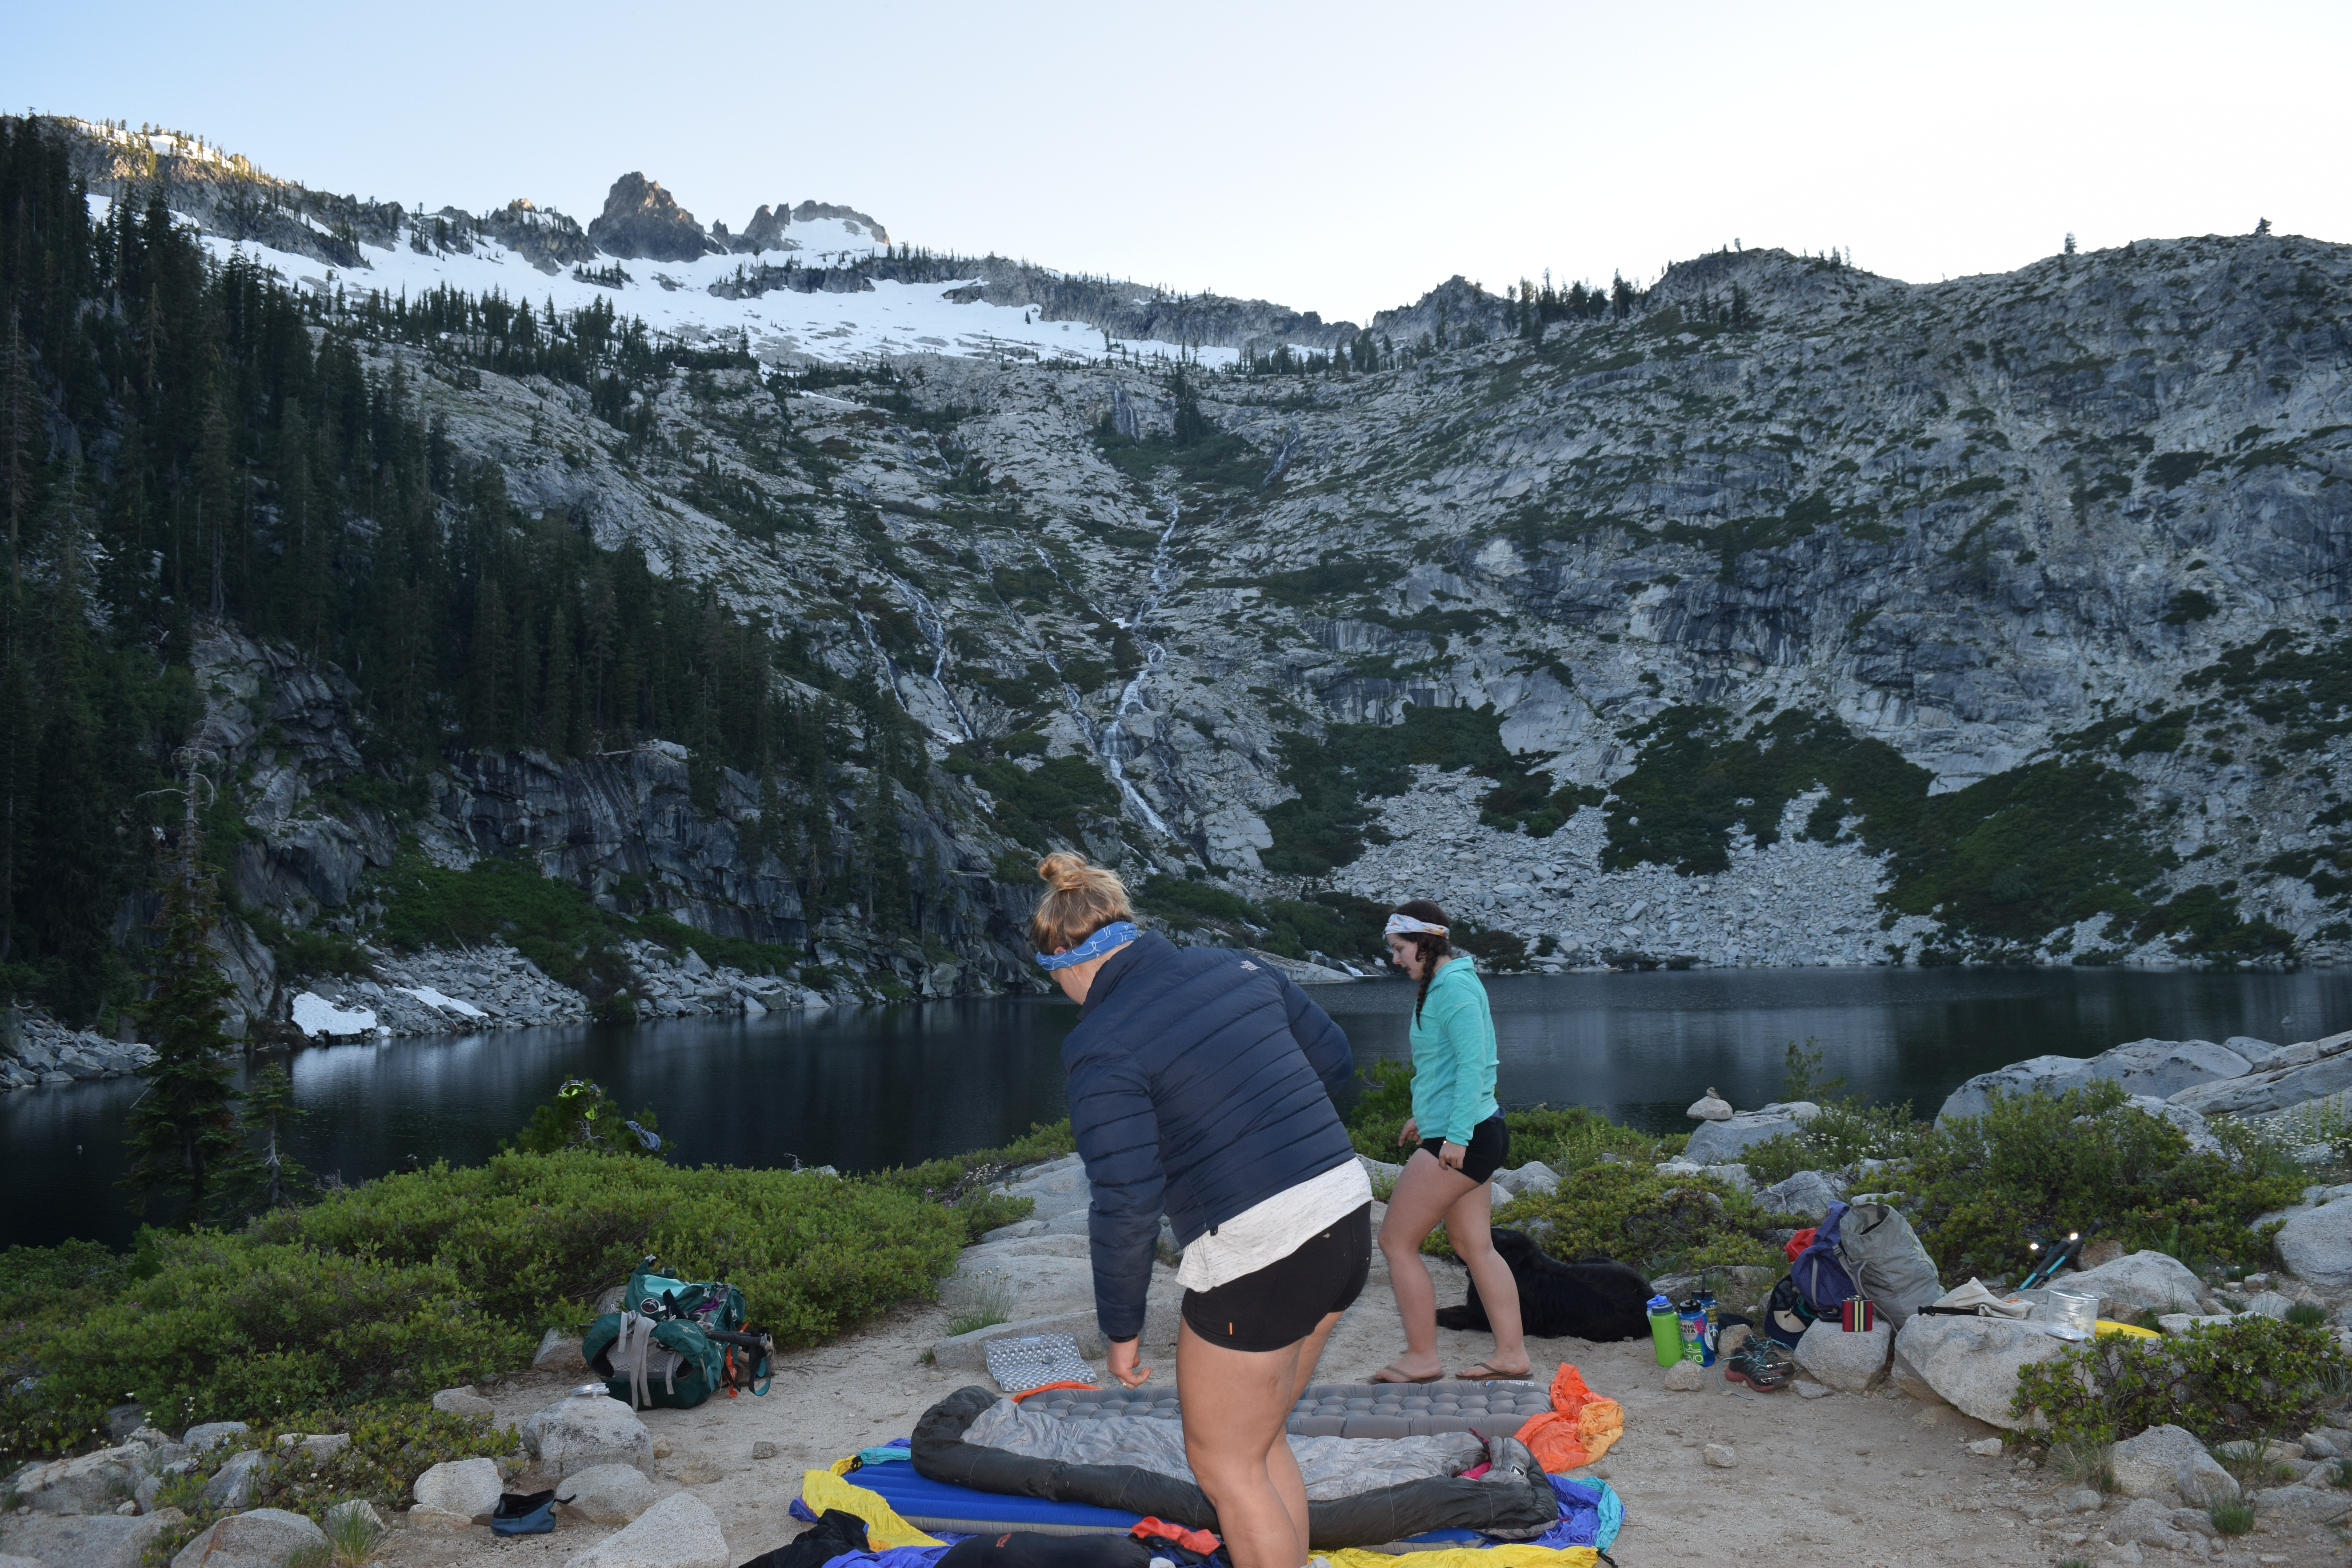 Two woman setting up a campsite overlooking a small lake in a mountain basin.